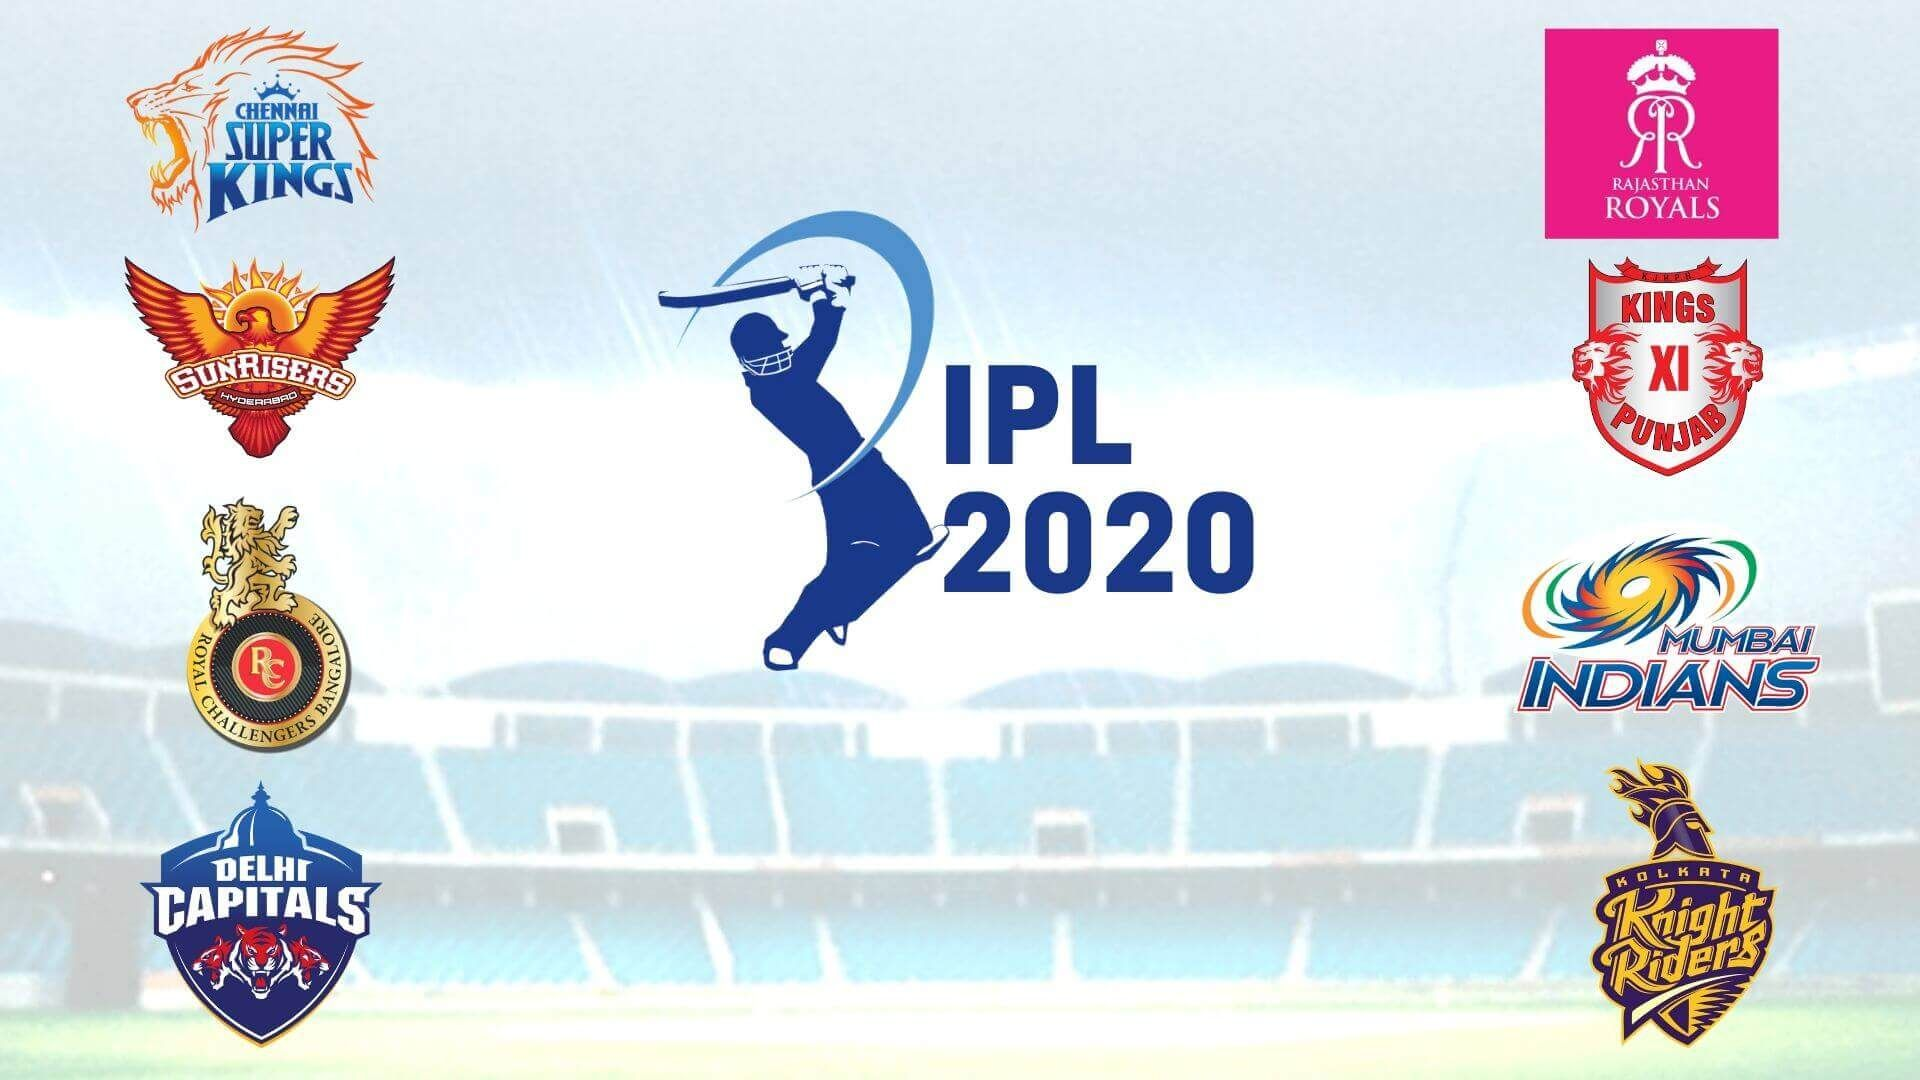 Ipl 2020 News It Ll Generate More Than 2k Crores Revenue For Star India Expert Says Ipl Will Start On 19 September In The Ua In 2020 Ipl Live Ipl Cricket In India